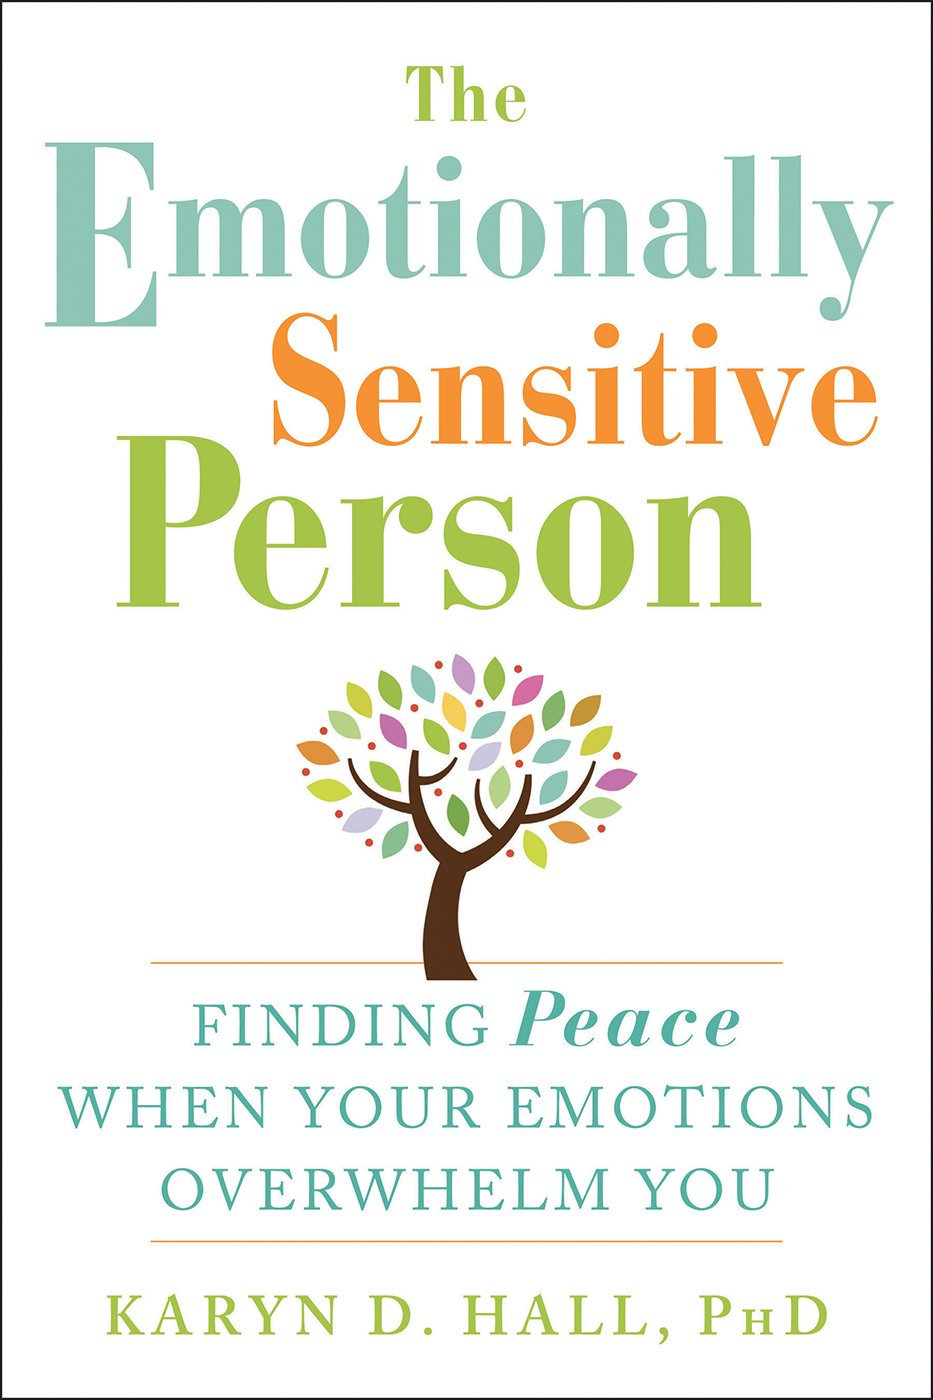 highly emotional person